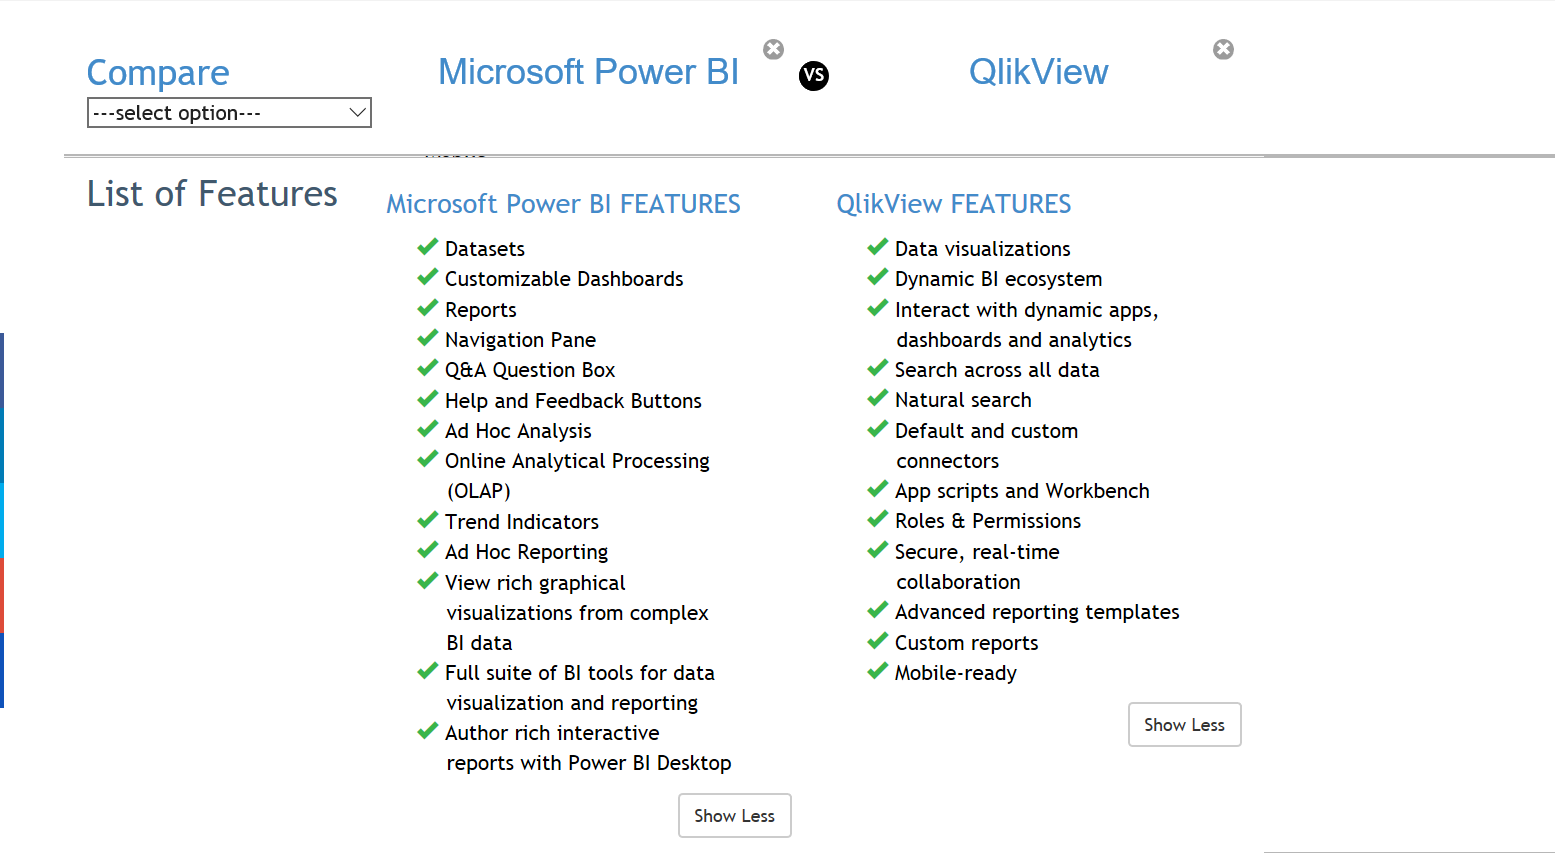 Power BI vs QlikView - Business Intelligence Tool Comparison